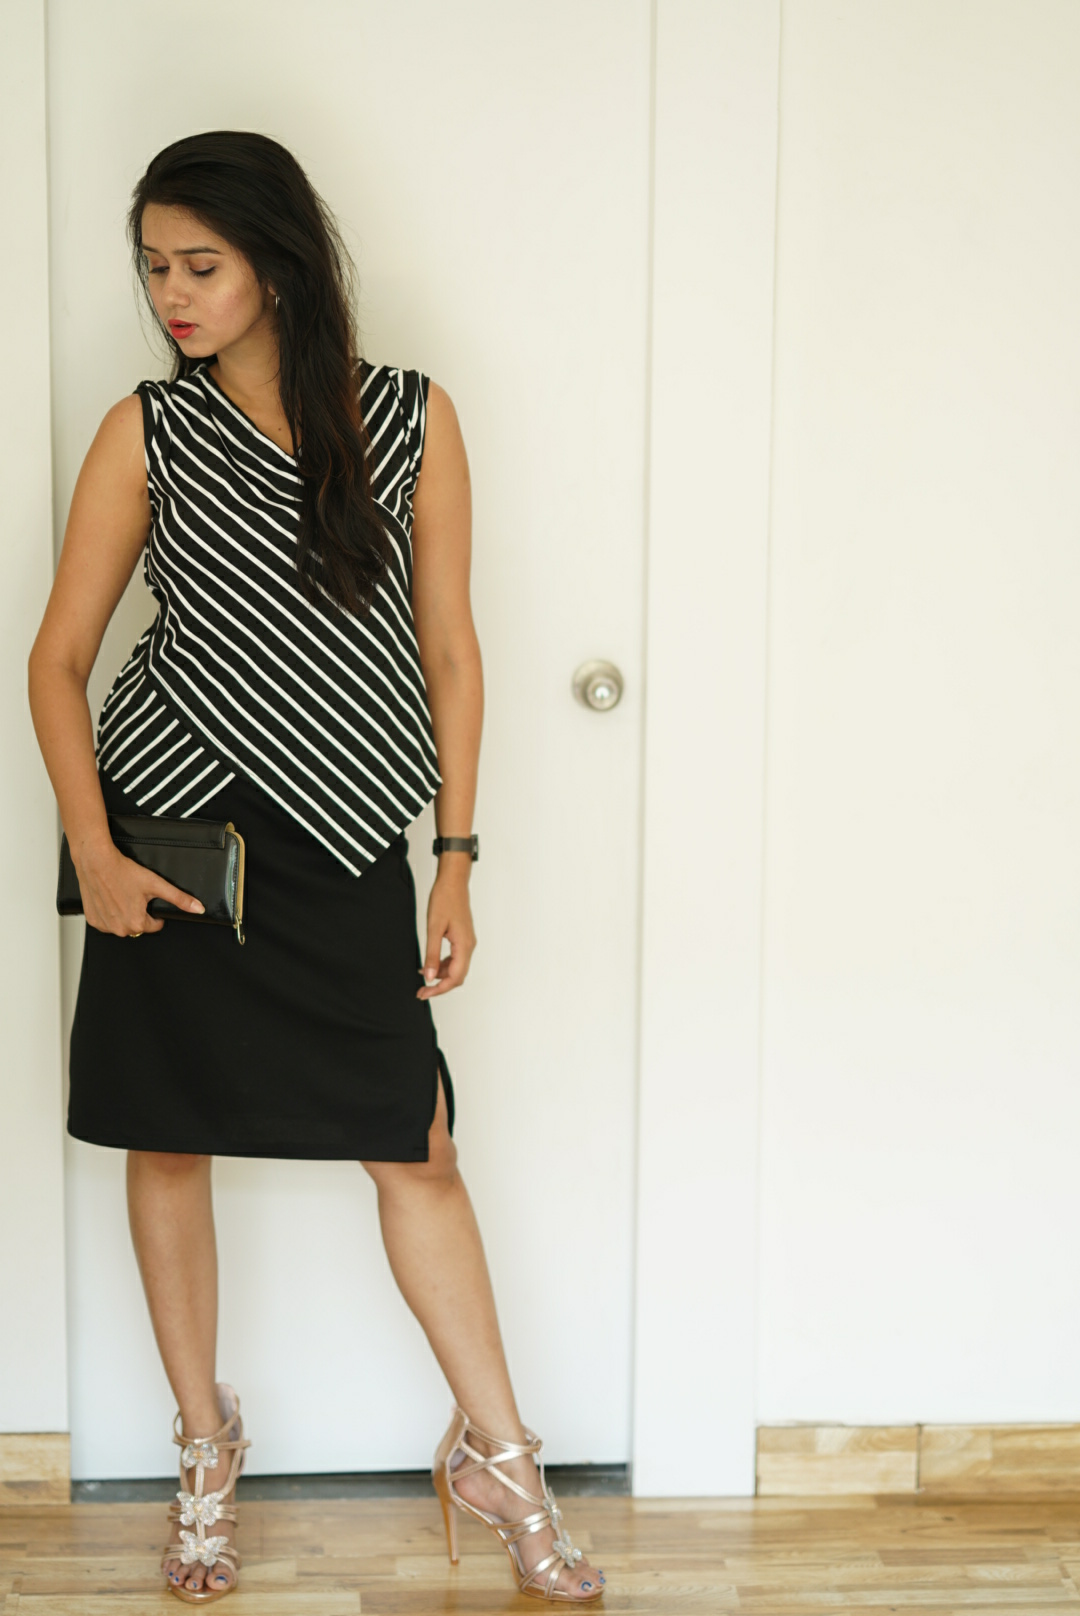 Brunette Waves-Styling a Black and white monochrome top in 4 looks